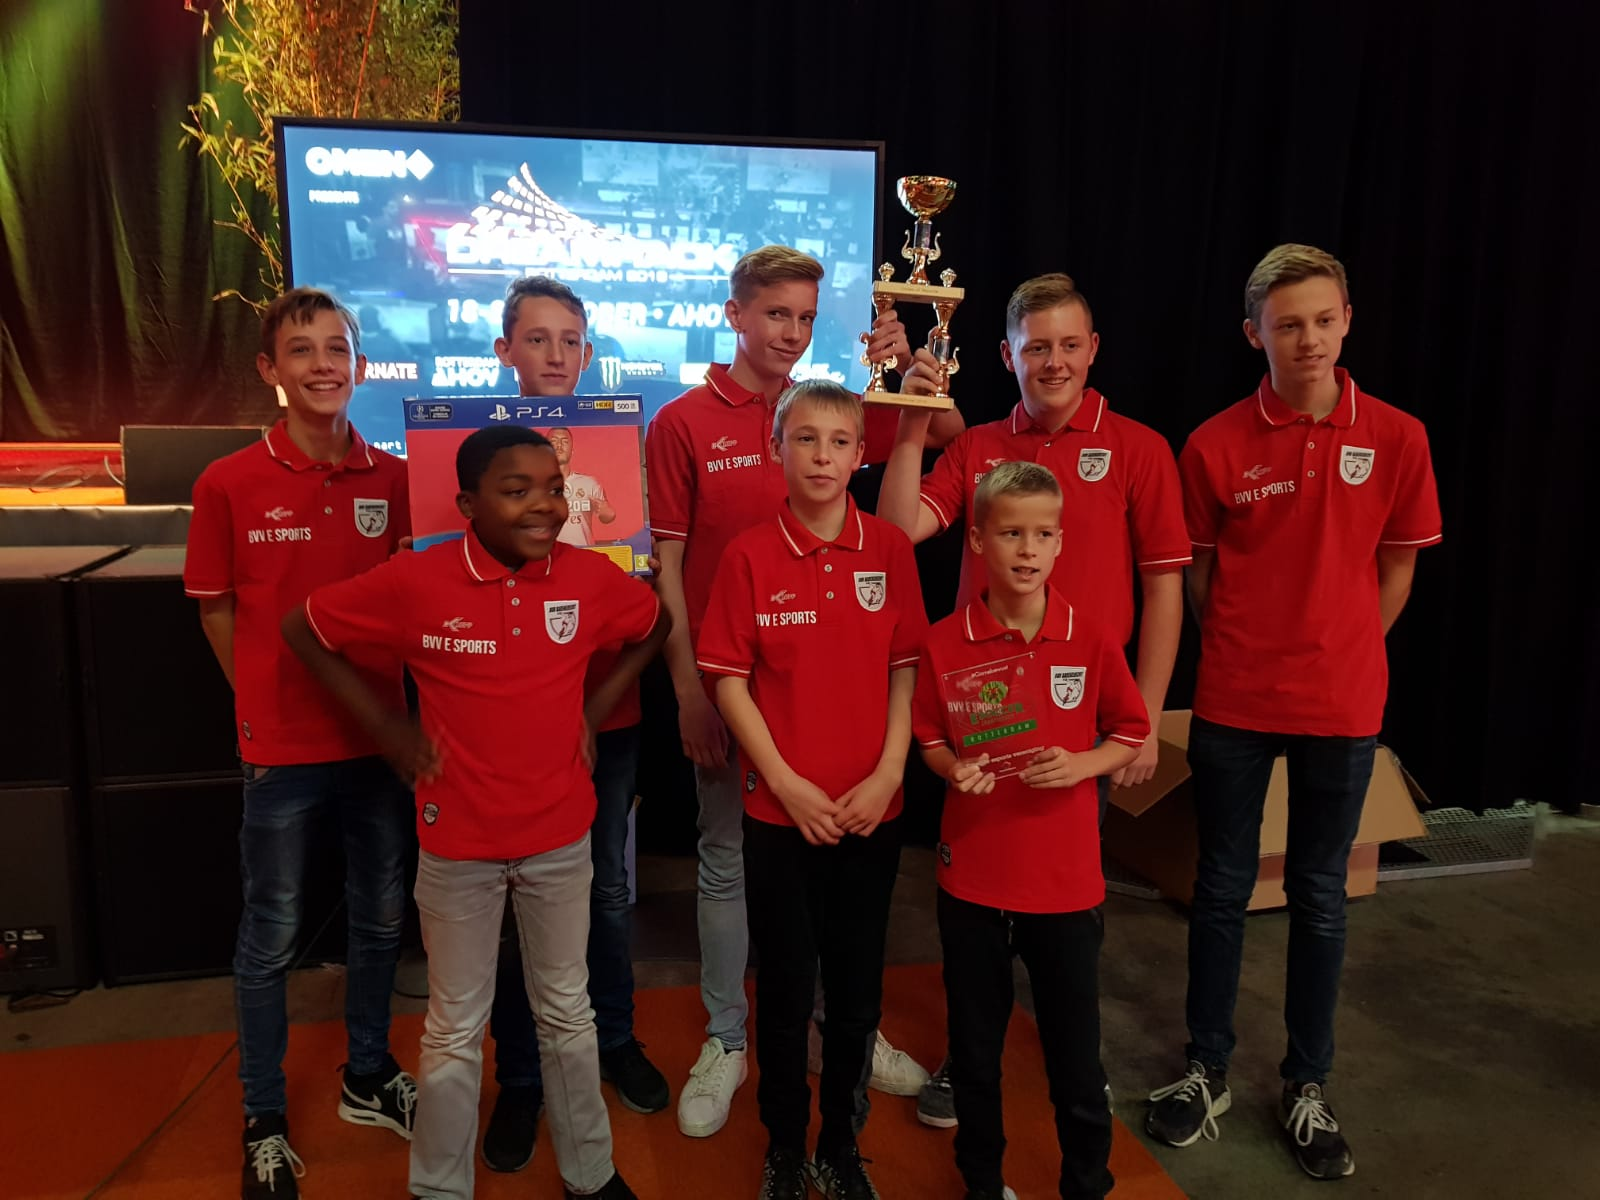 E-sports team BVV Barendrecht